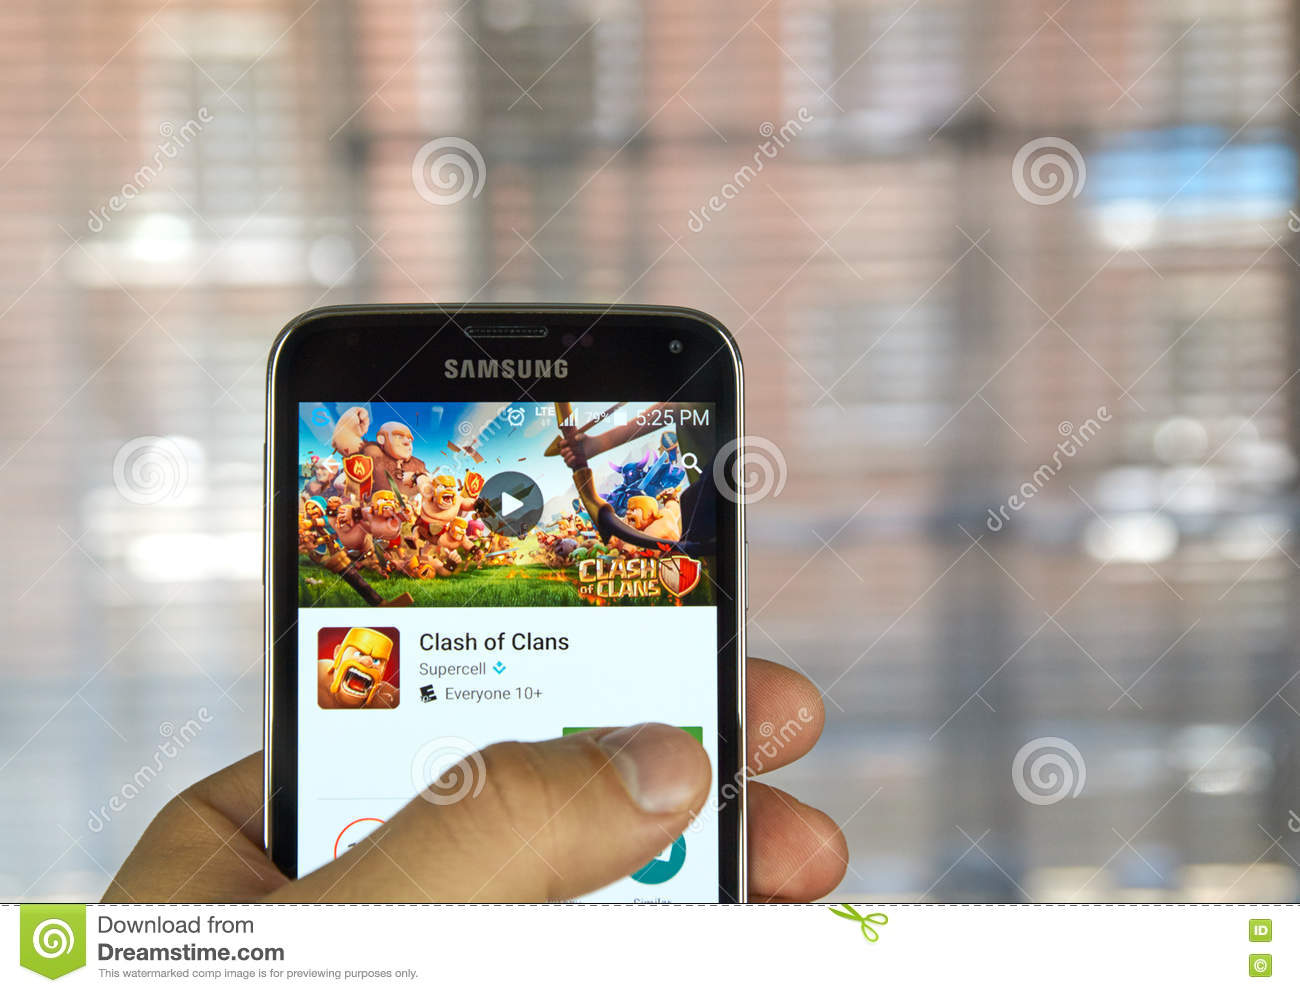 clash of clans link ios to android